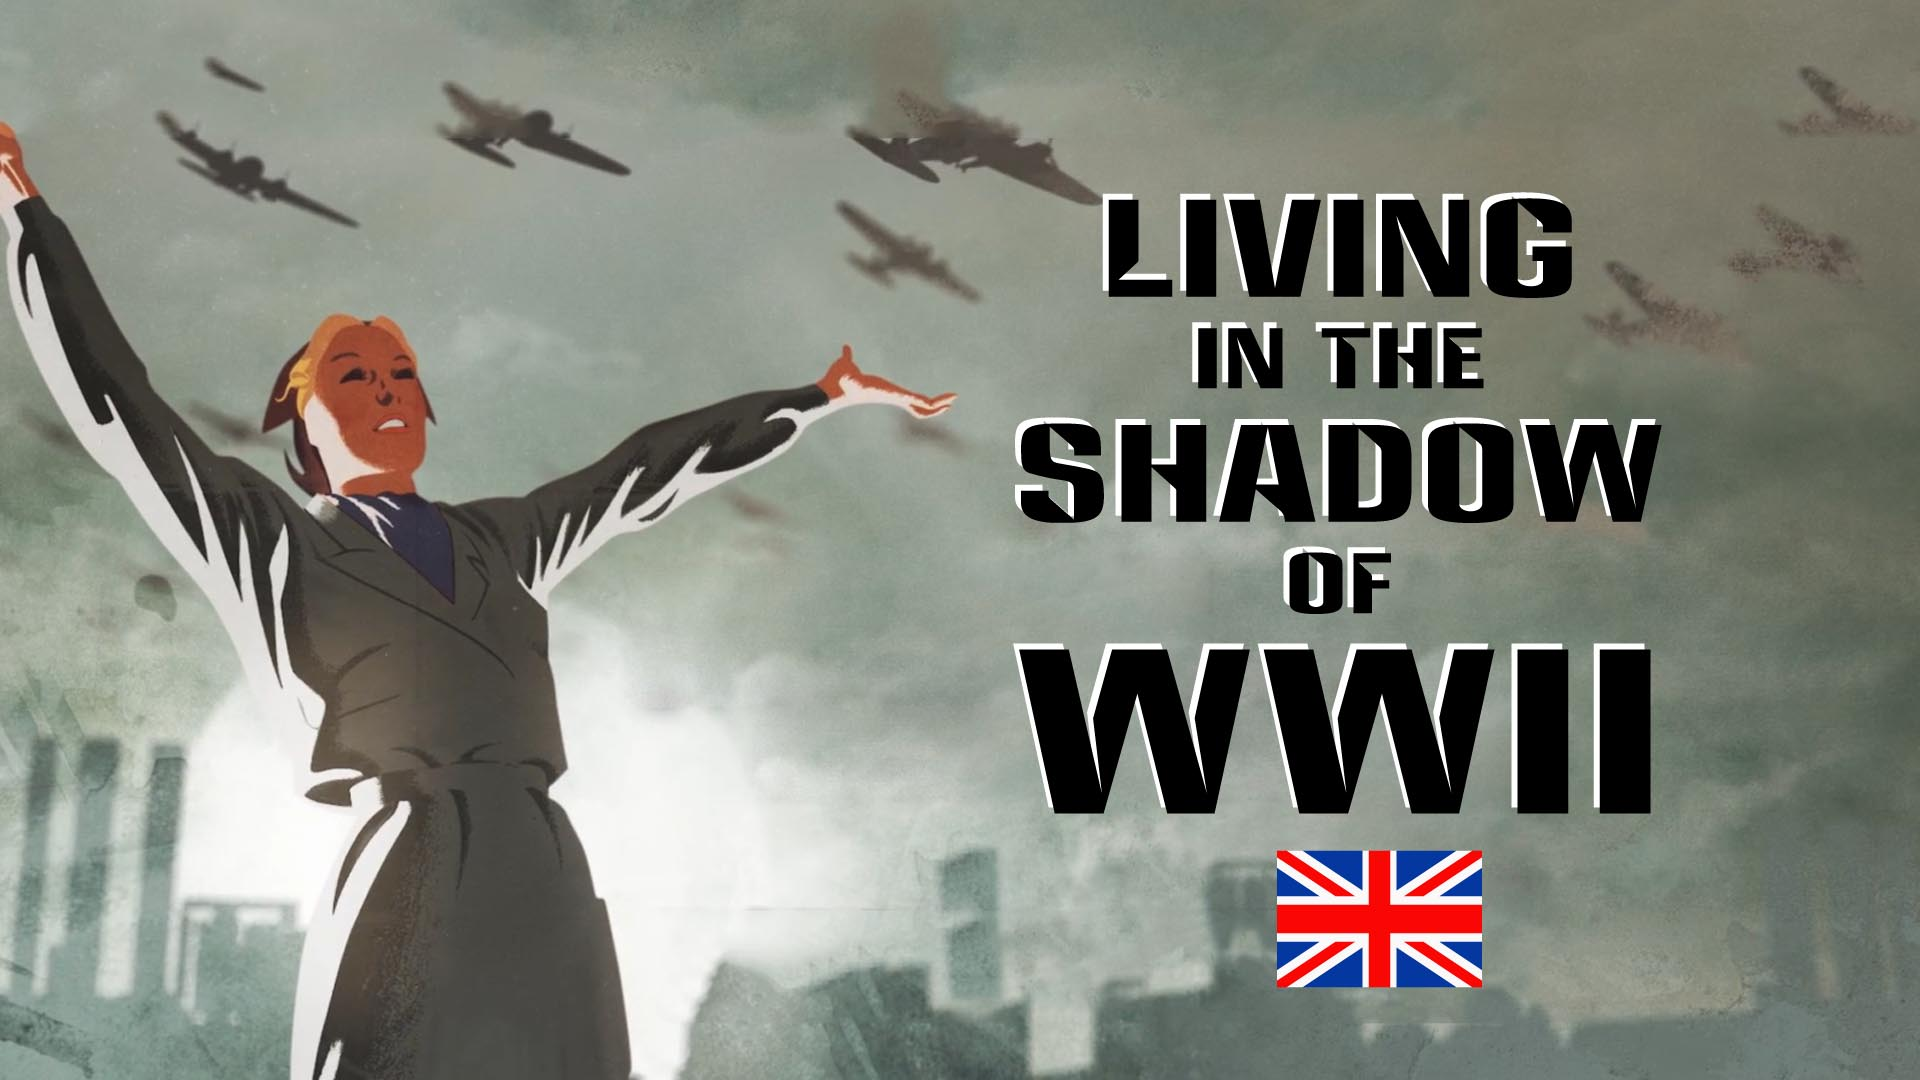 Living in the Shadow of WWII